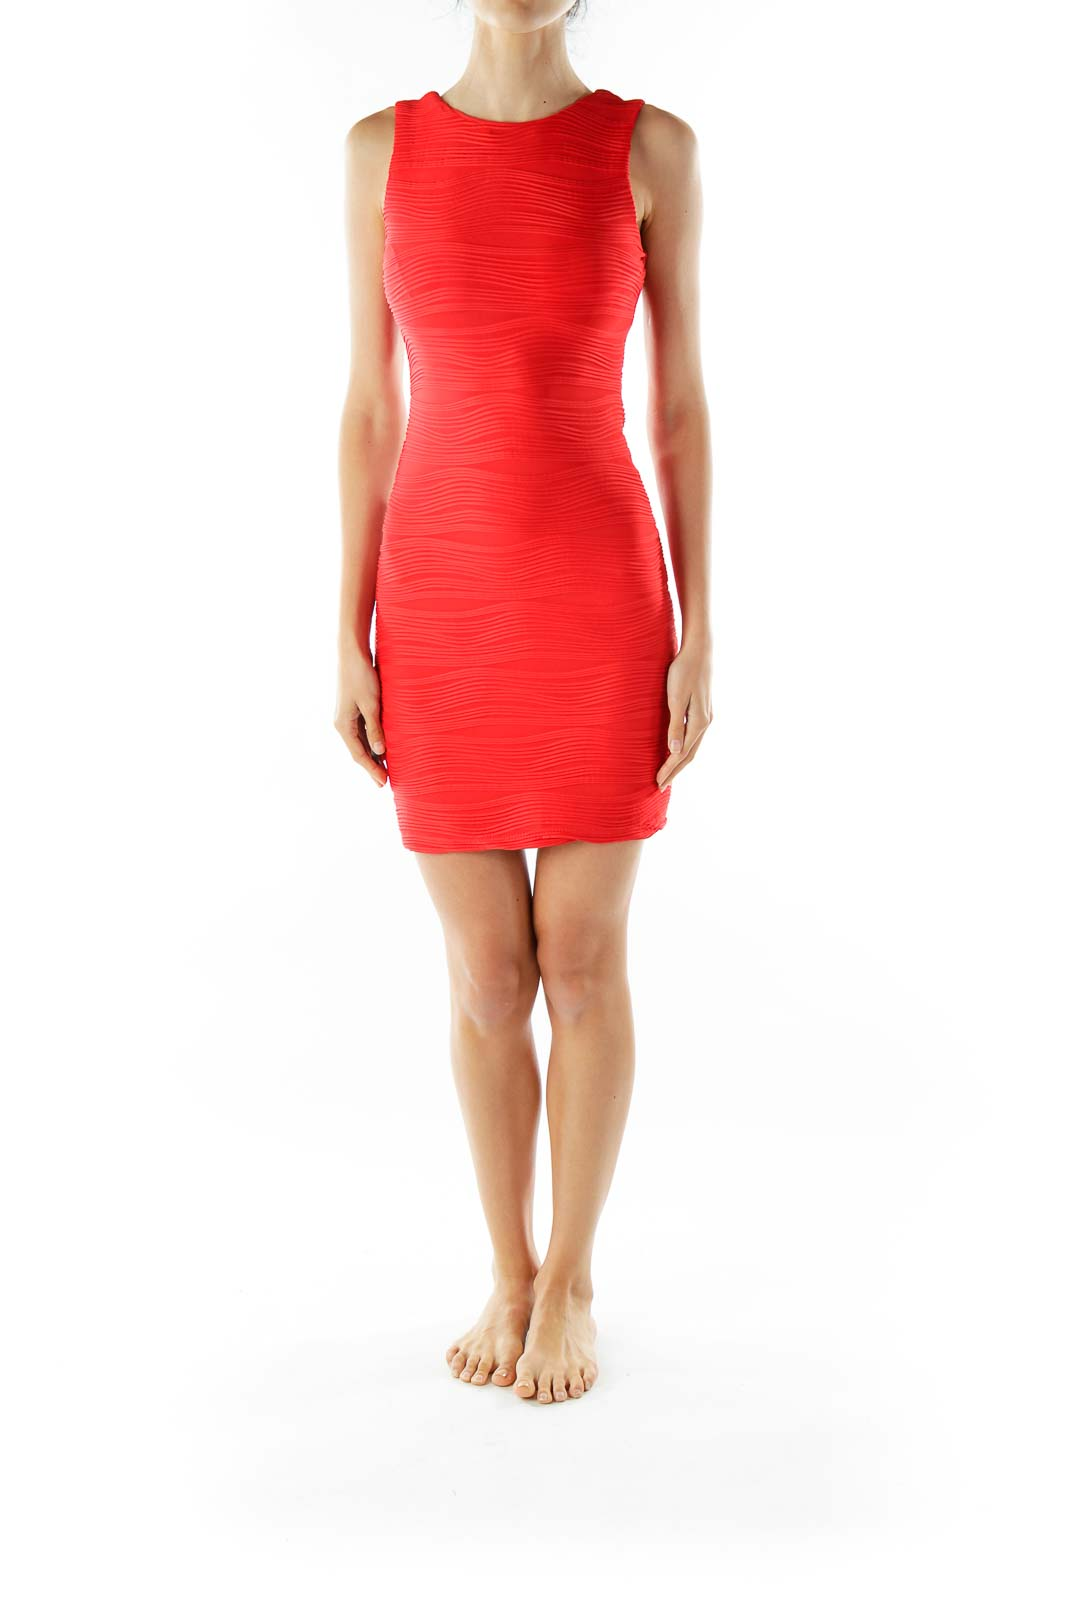 Red Sheath Cocktail Dress